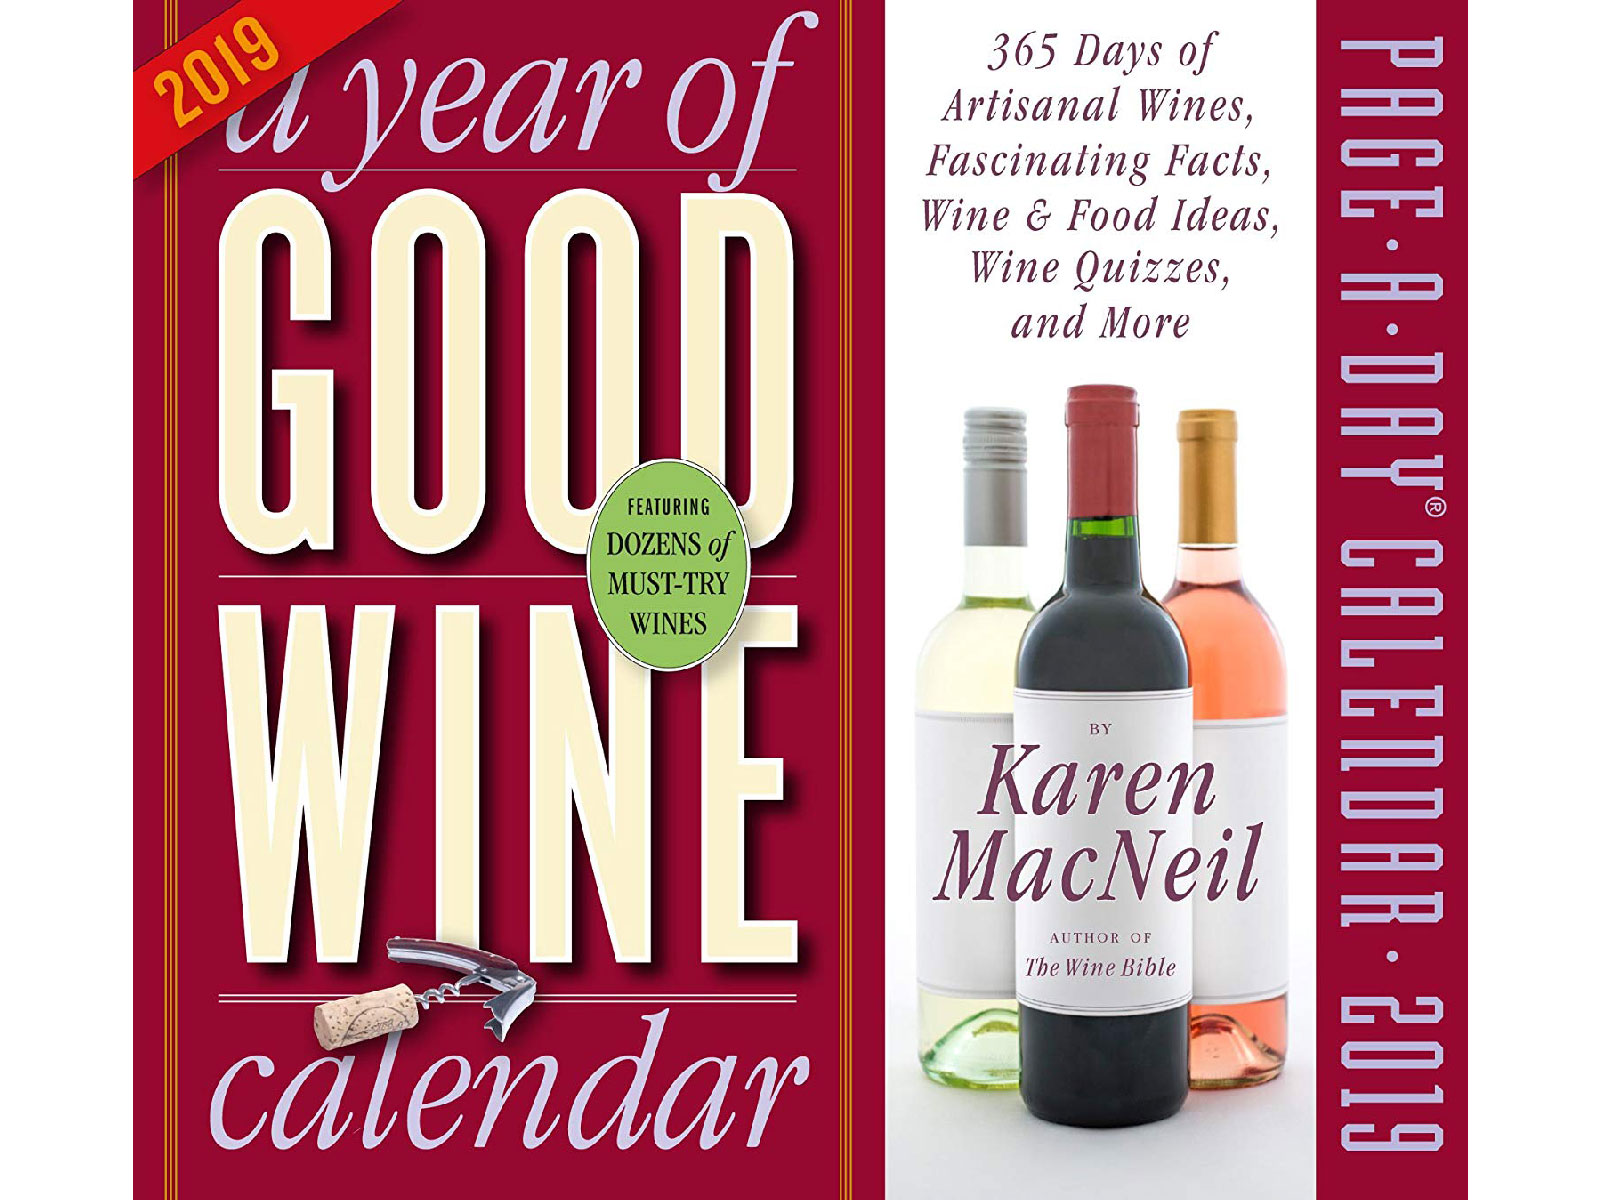 9954da0ad5a 10 Gifts for the Wine Lover Who Has Everything | Food & Wine